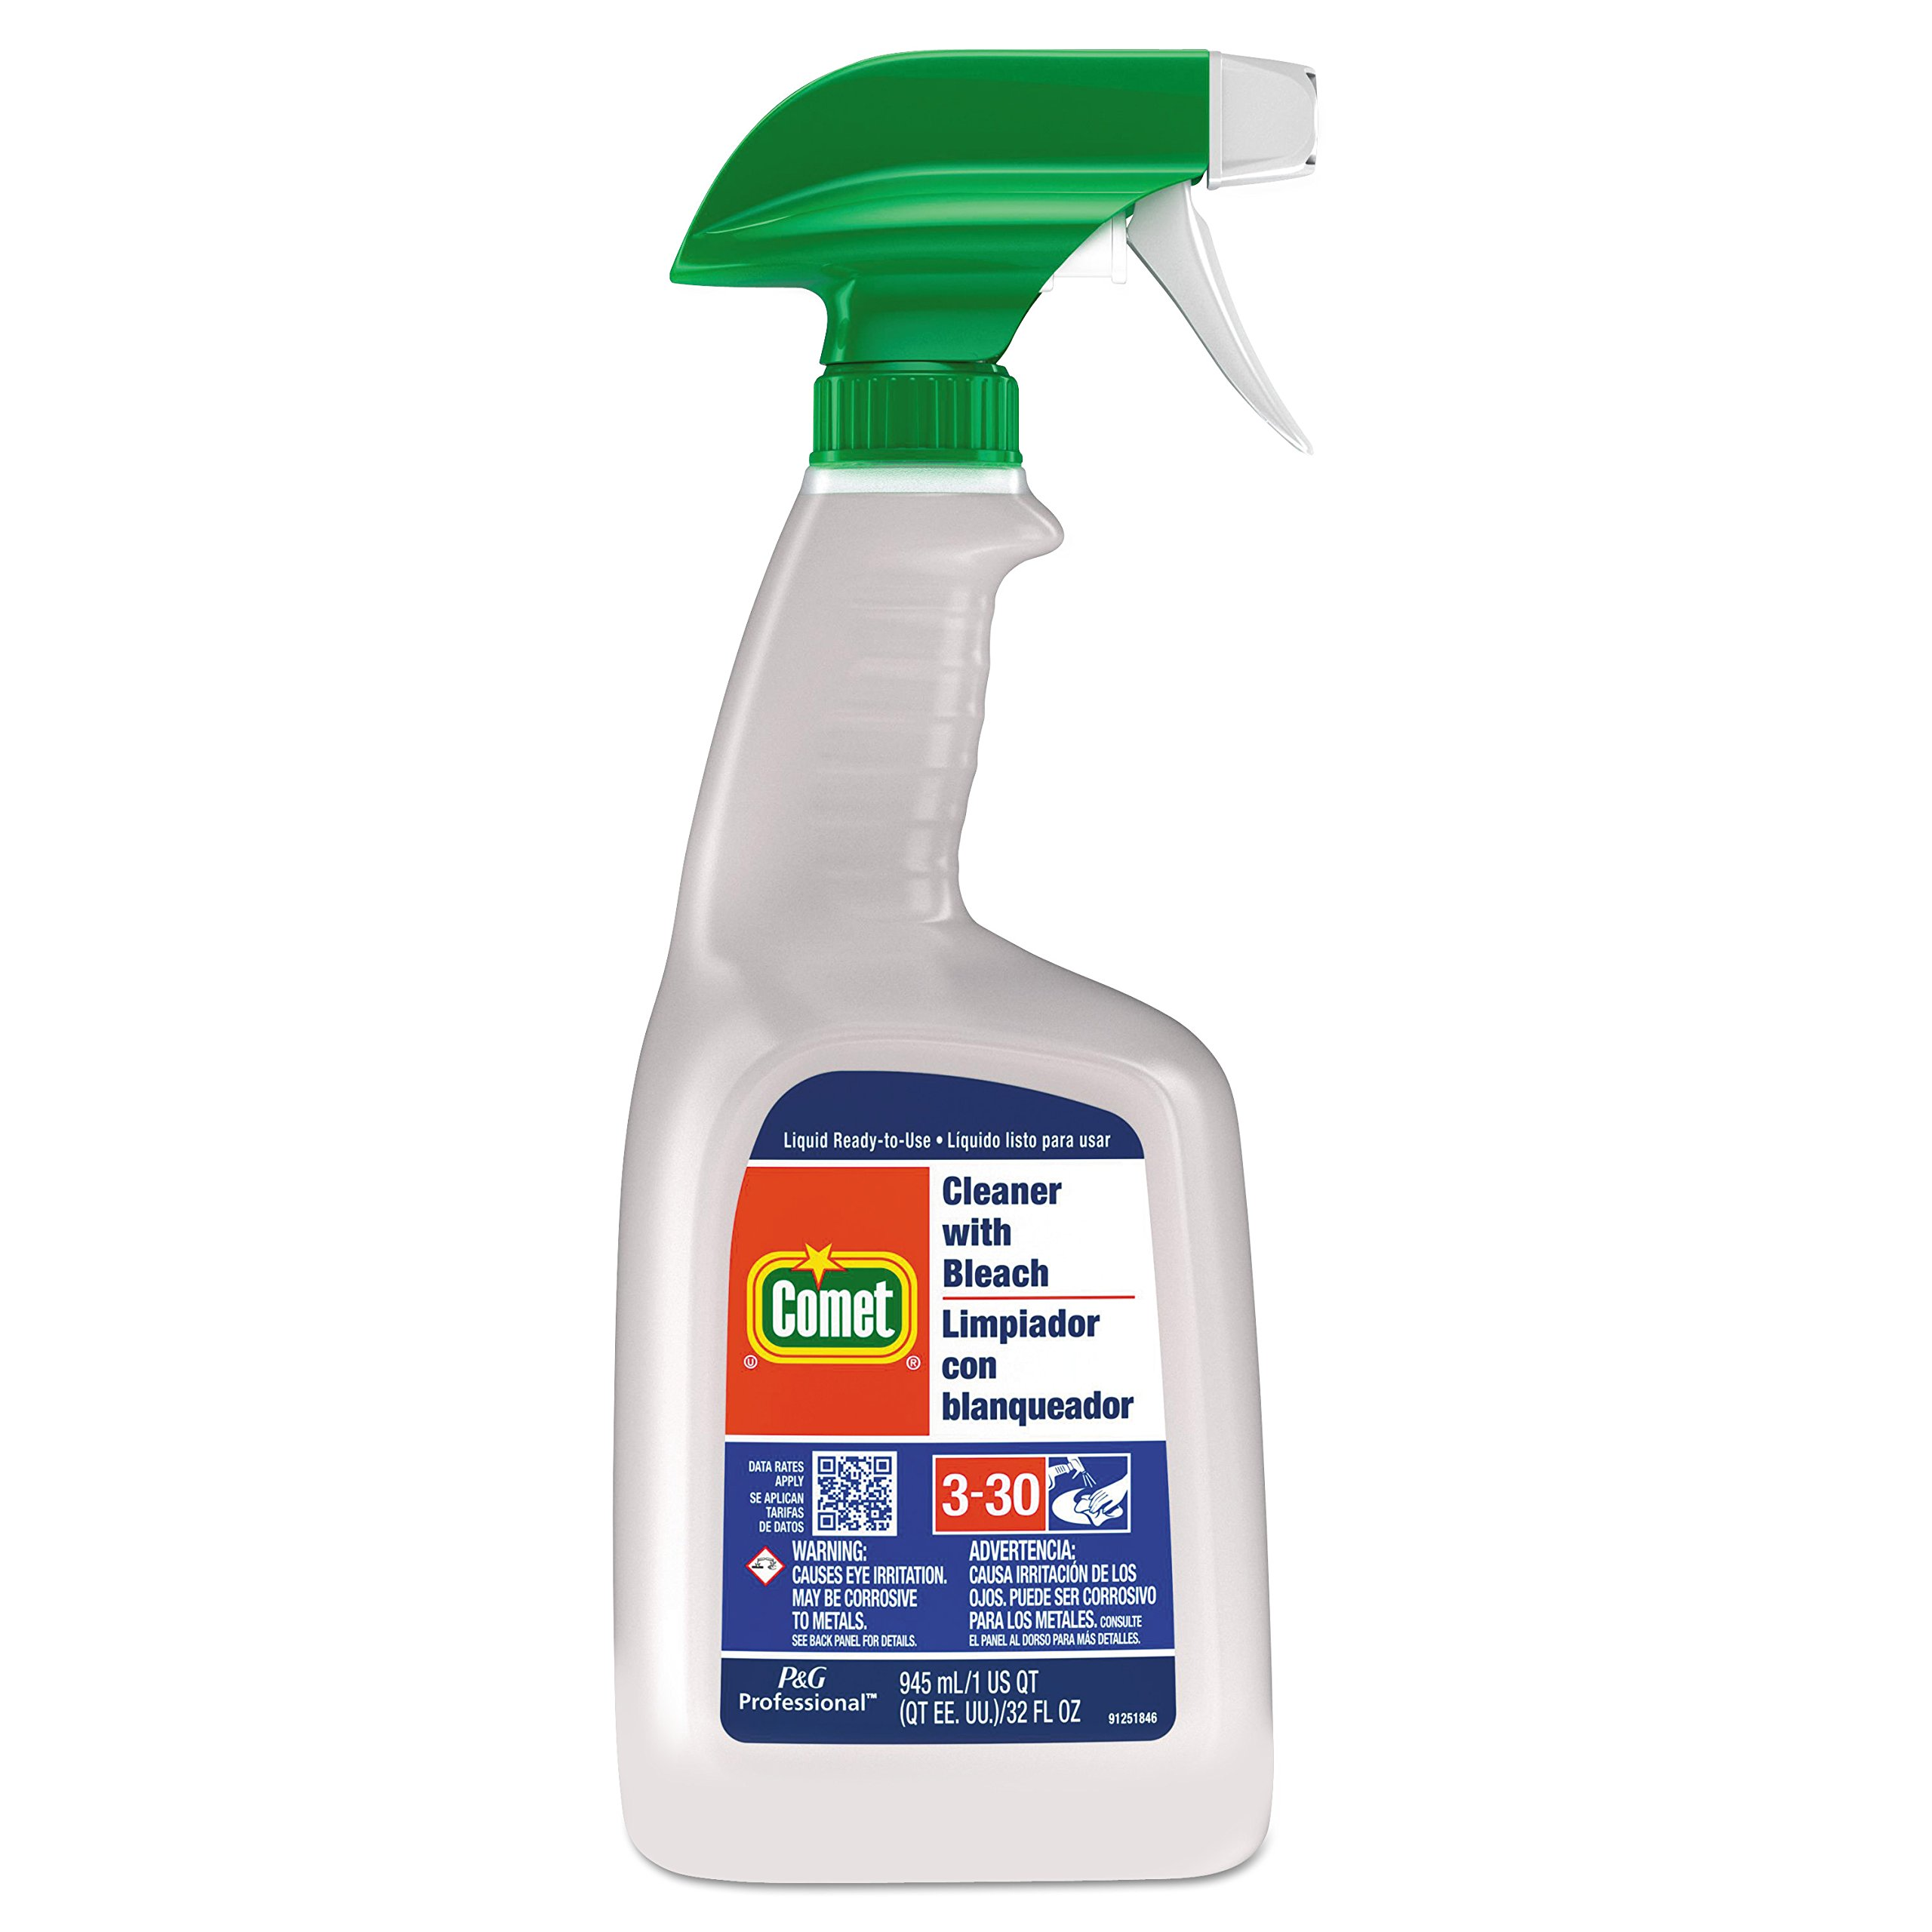 Comet 02287CT Cleaner with Bleach, 32 oz Spray Bottle (Case of 8)